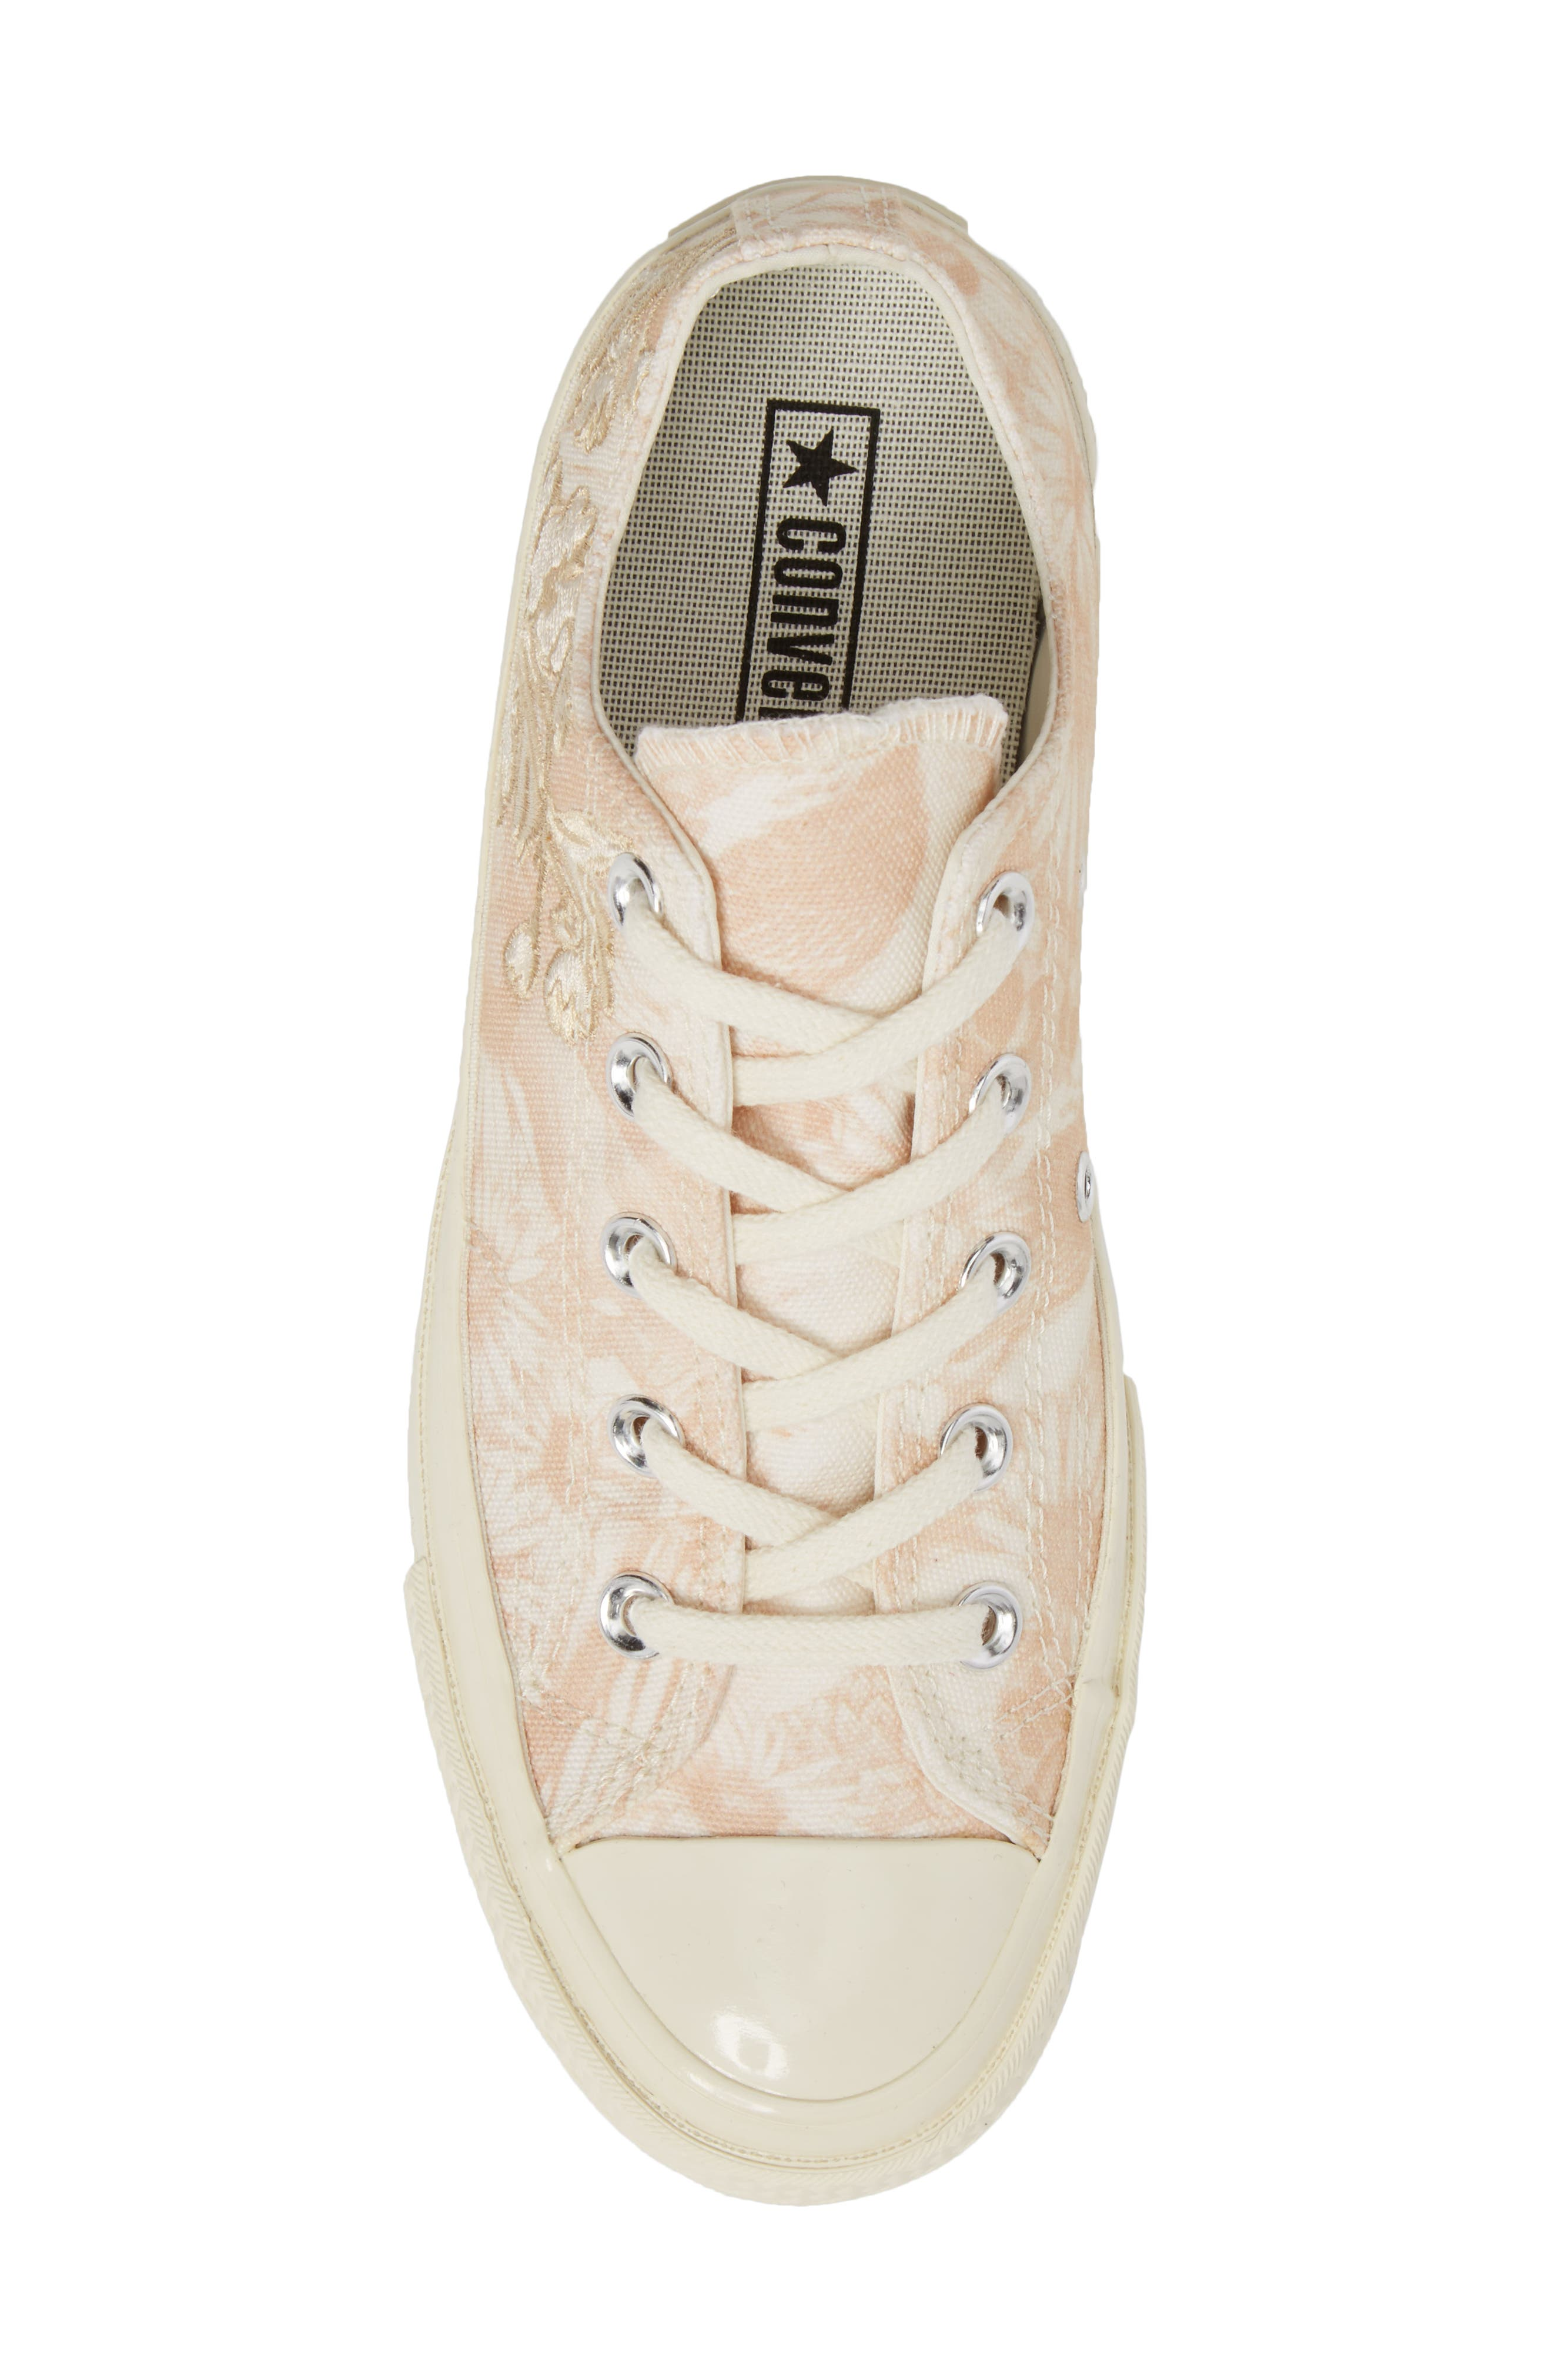 Chuck Taylor<sup>®</sup> All Star<sup>®</sup> 70 Spring Forward Sneaker,                             Alternate thumbnail 5, color,                             101